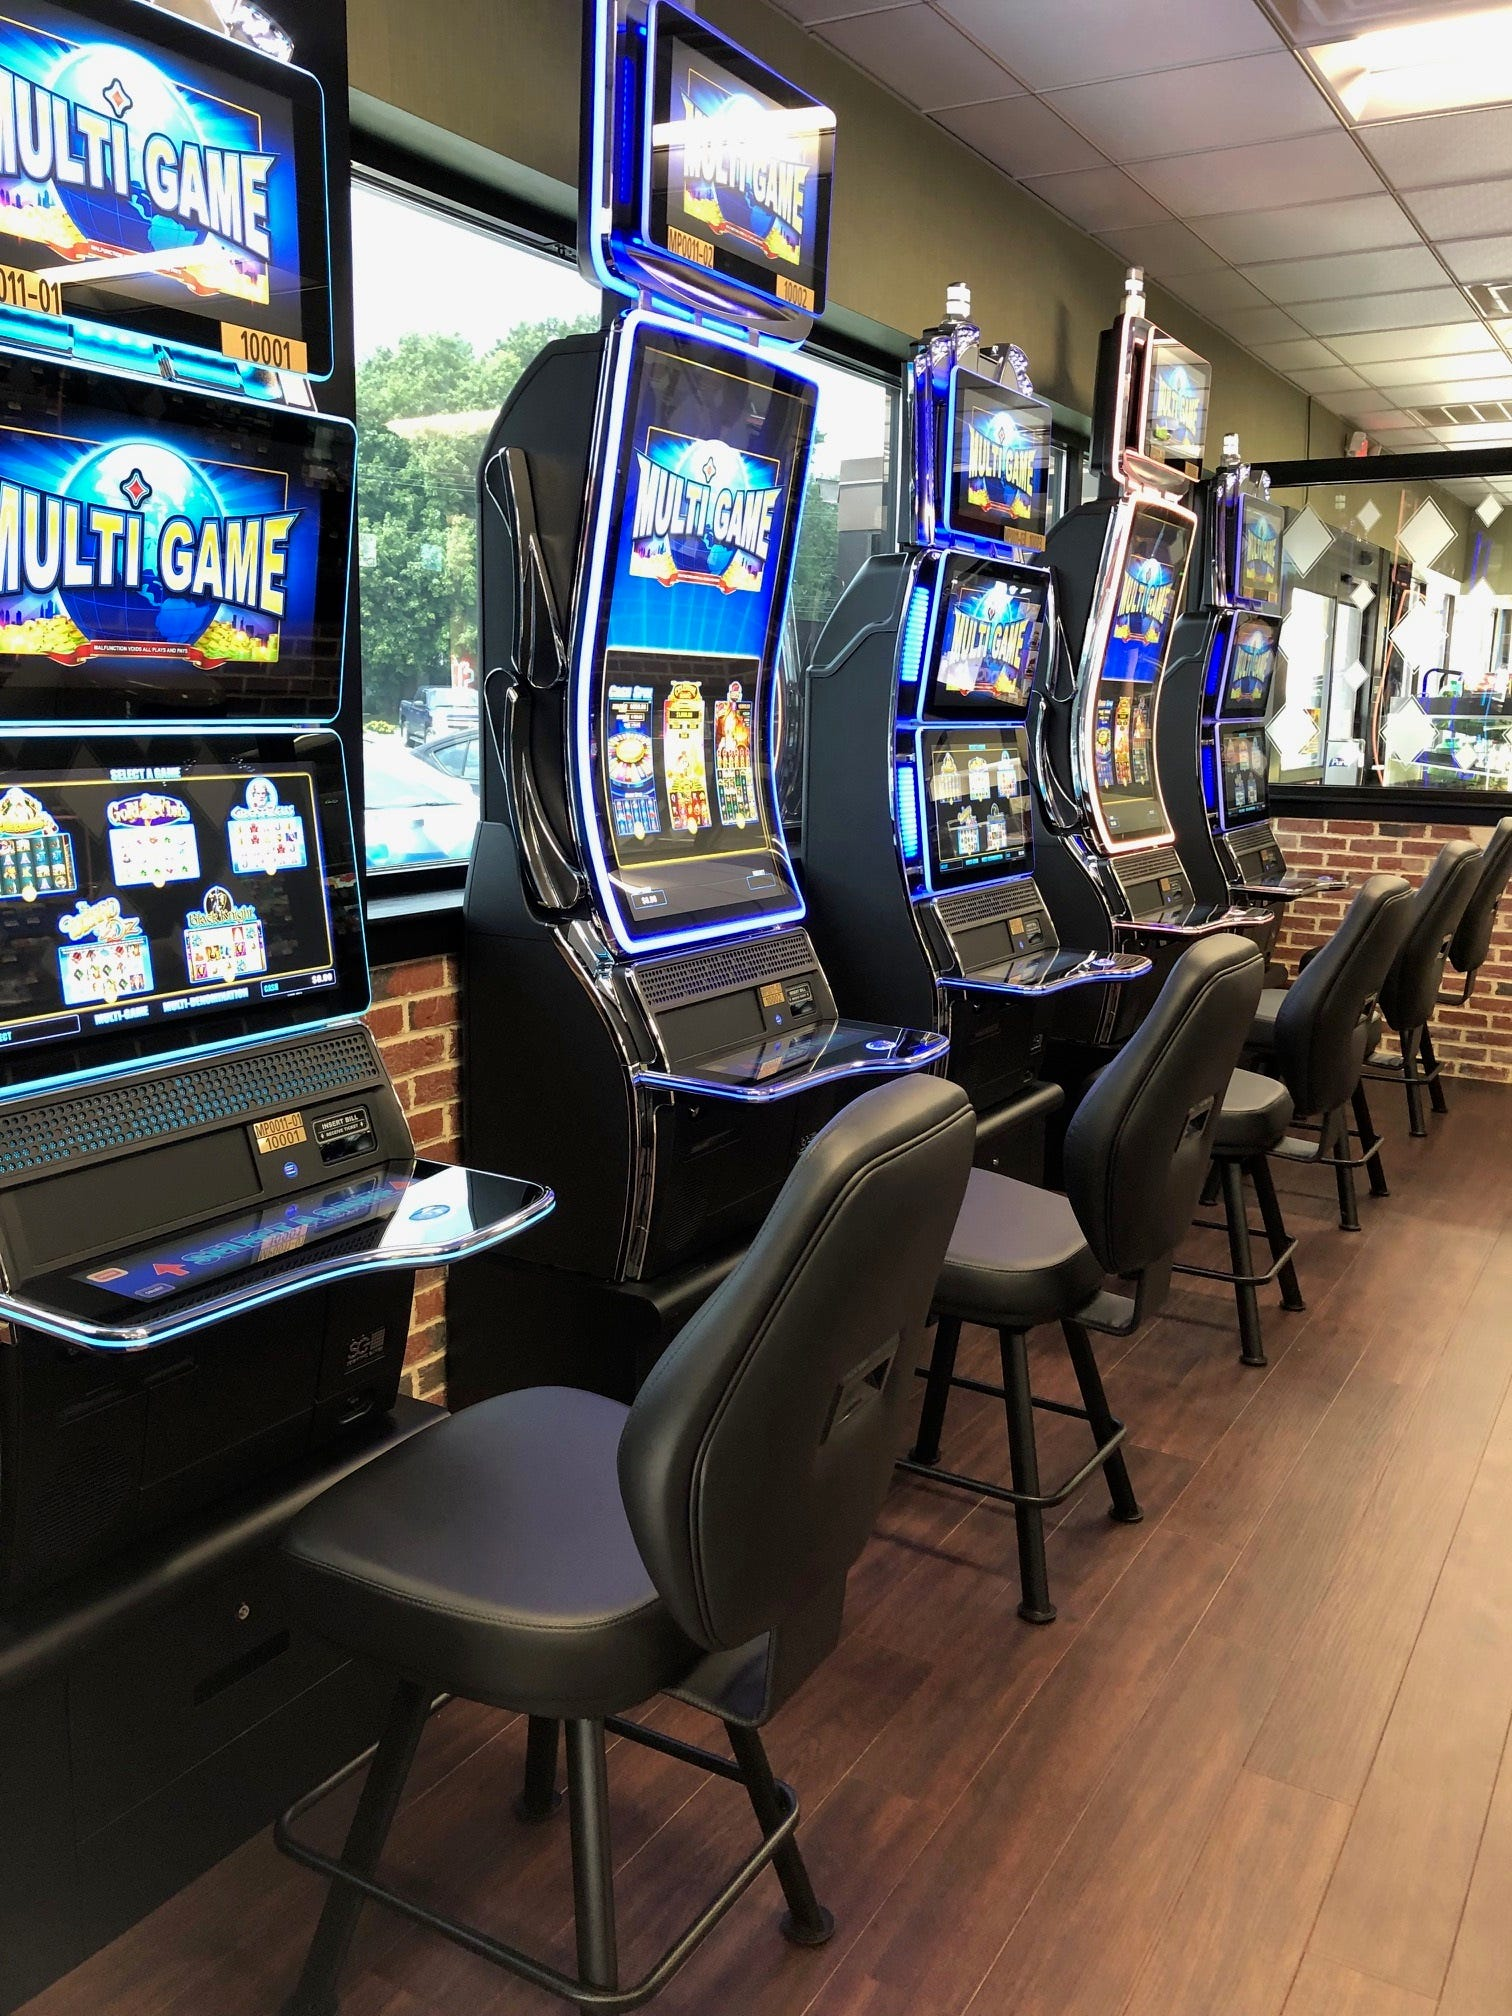 Virtual gaming terminals are now available to play at 14 Rutter's locations throughout central Pennsylvania.